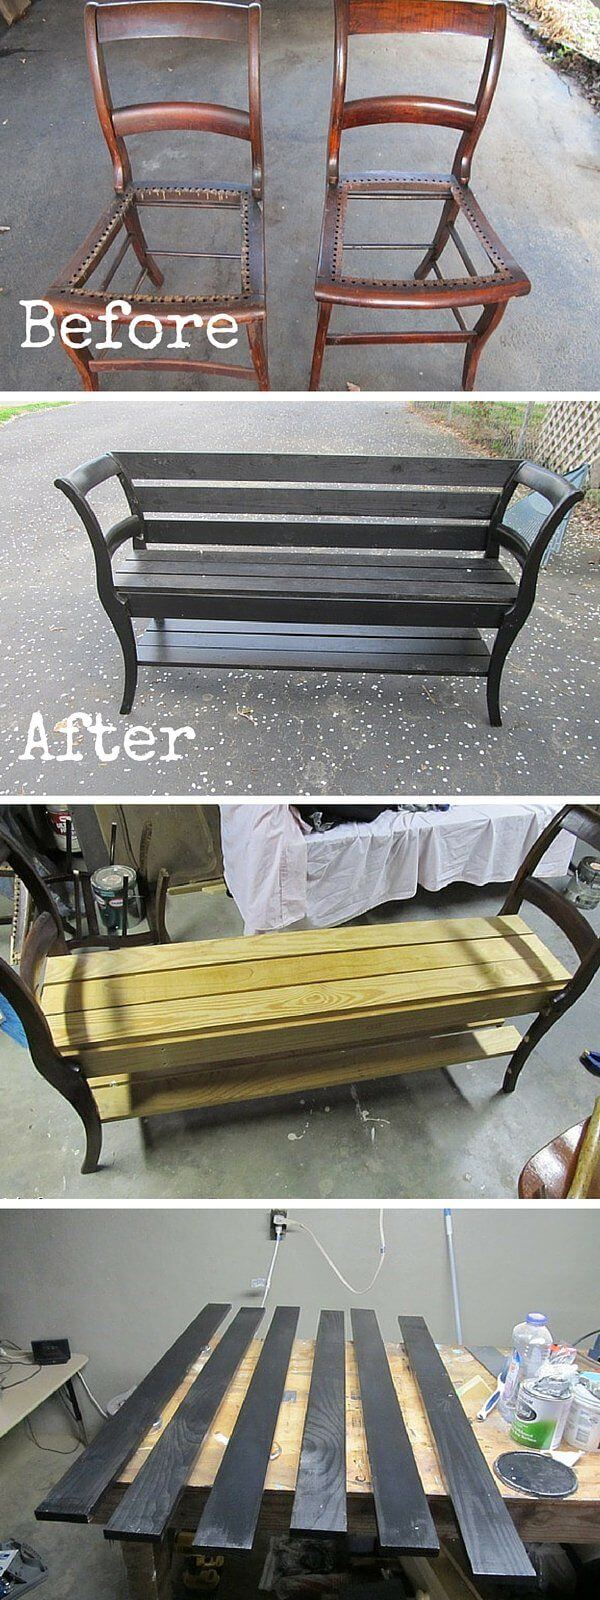 A Bench Created Using Repurposed Old Chairs